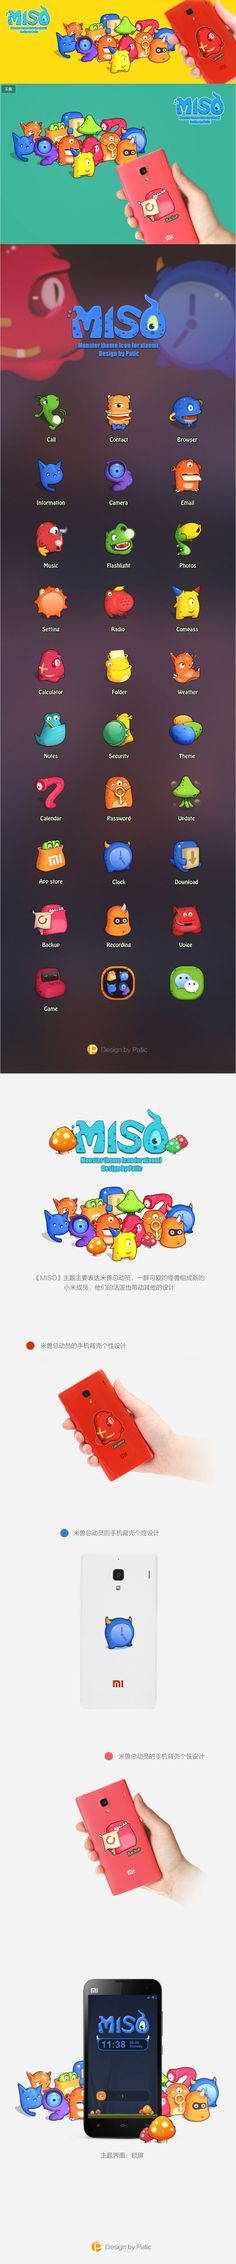 《MISO》or《米兽》-UI中国-专业... ★ Find more at http://www.pinterest.com/competing/: